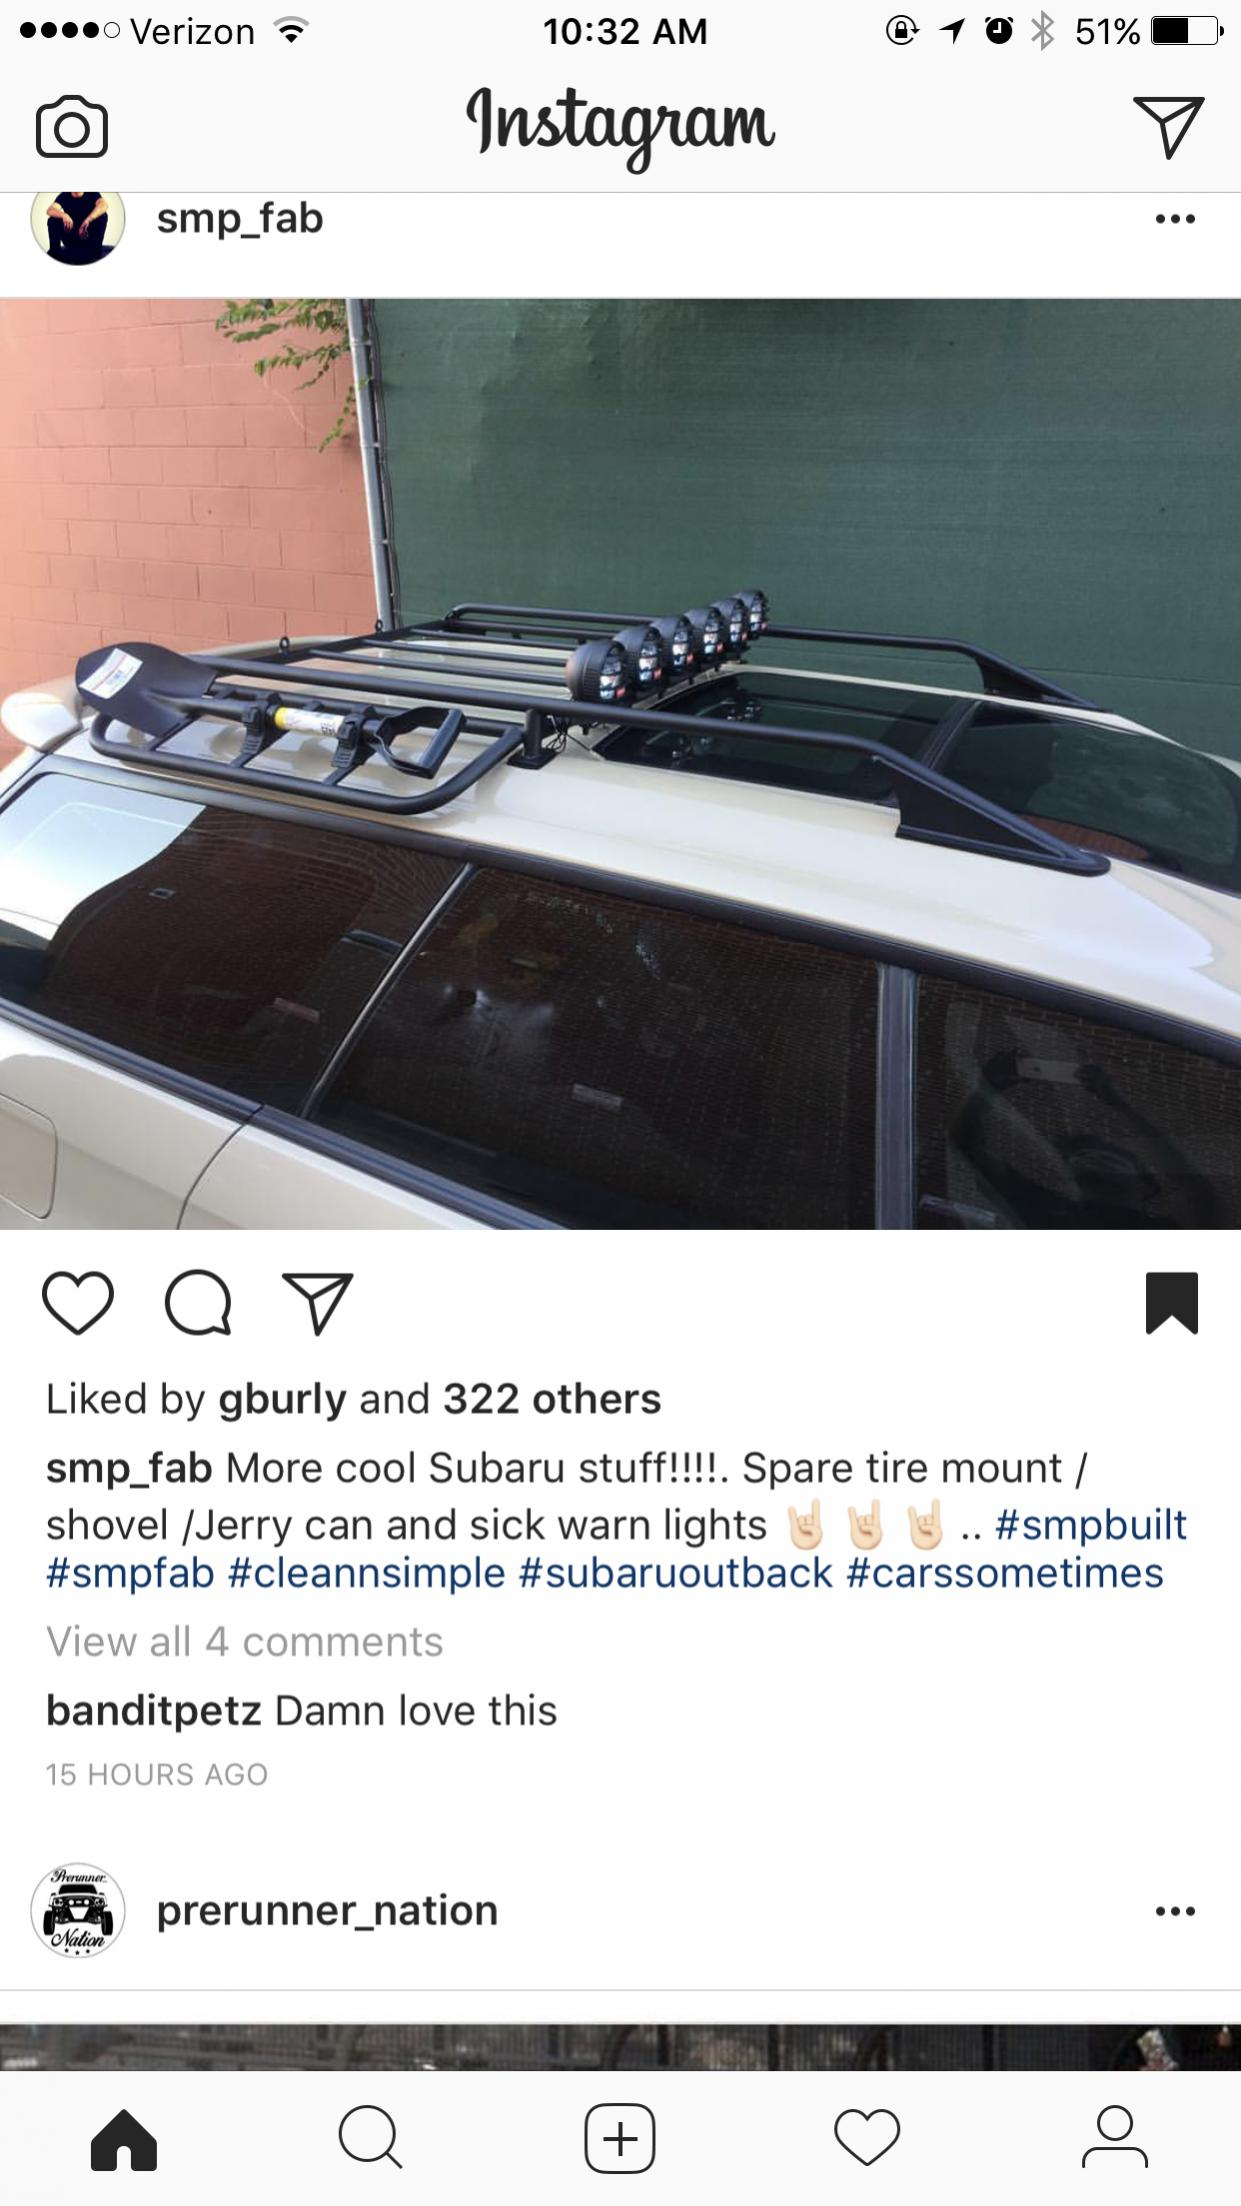 4runner Leveling Kit Tire Size furthermore 3 Kayak Rack For Suv in addition Bike Rack Focus St 906218 likewise Yakima Slimshady Awning 291531 1 as well Page 33. on subaru roof rack attachments